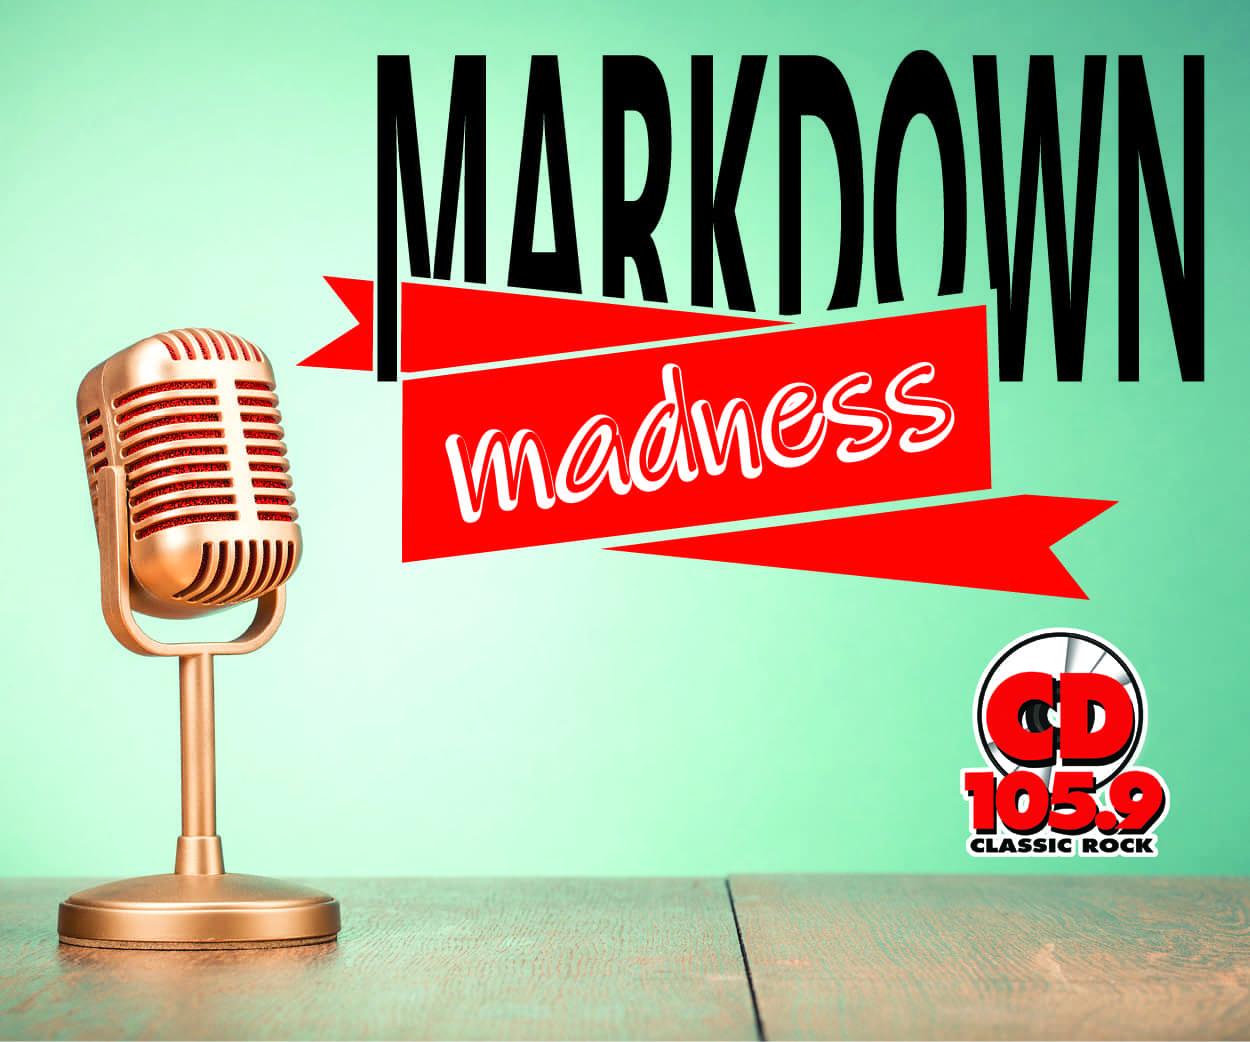 markdown-madness-NEW-CD